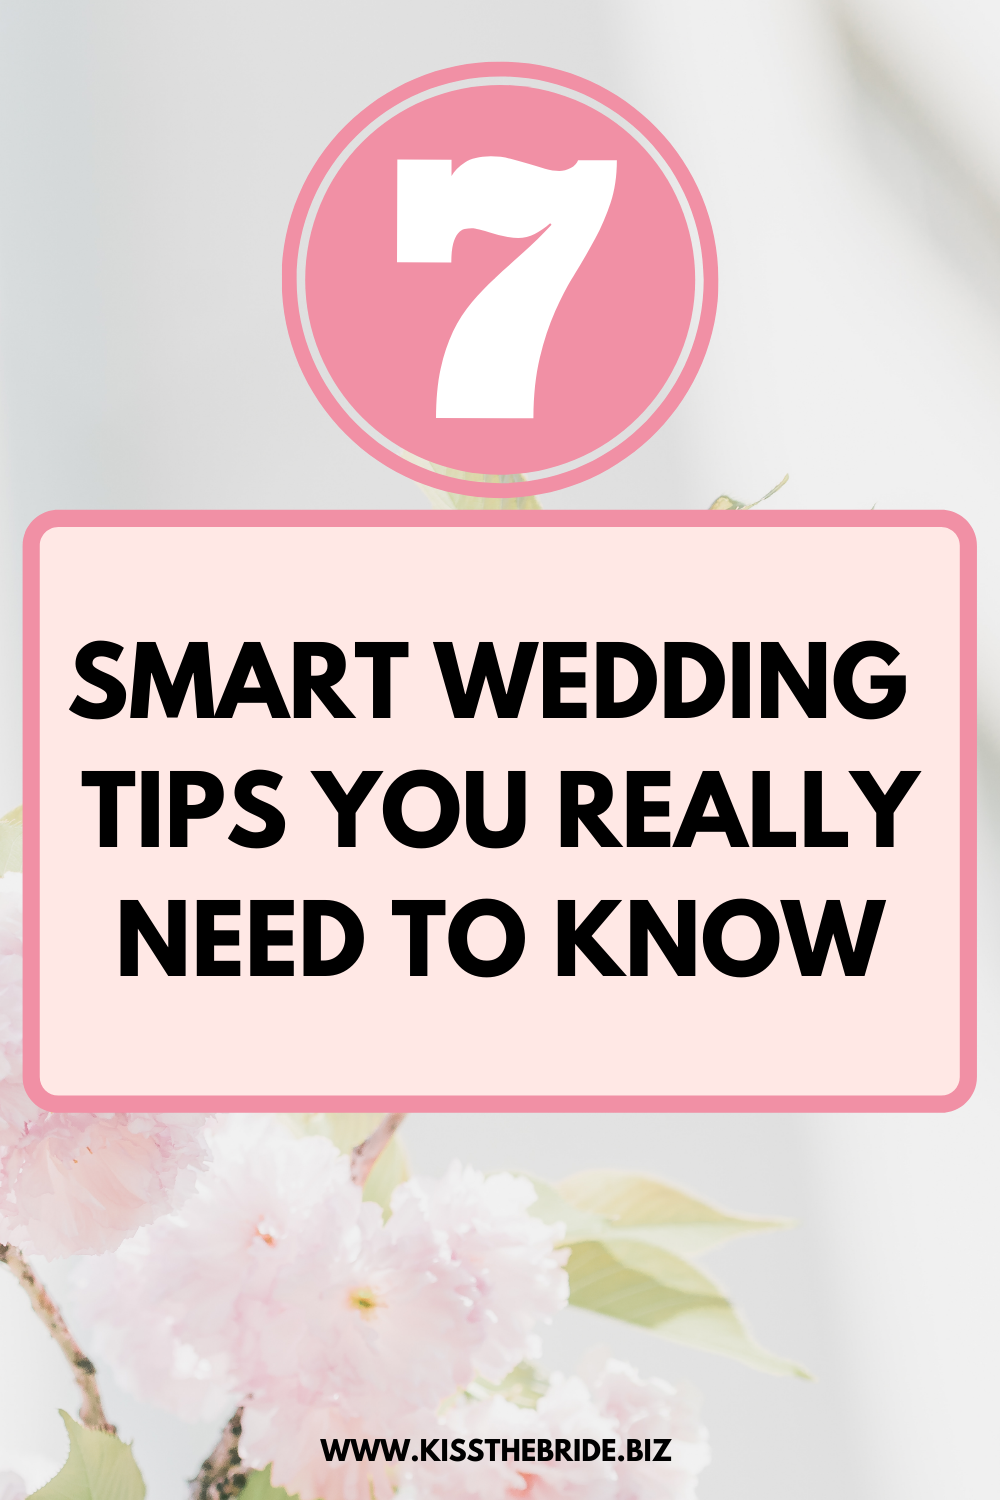 7 Wedding planning tips